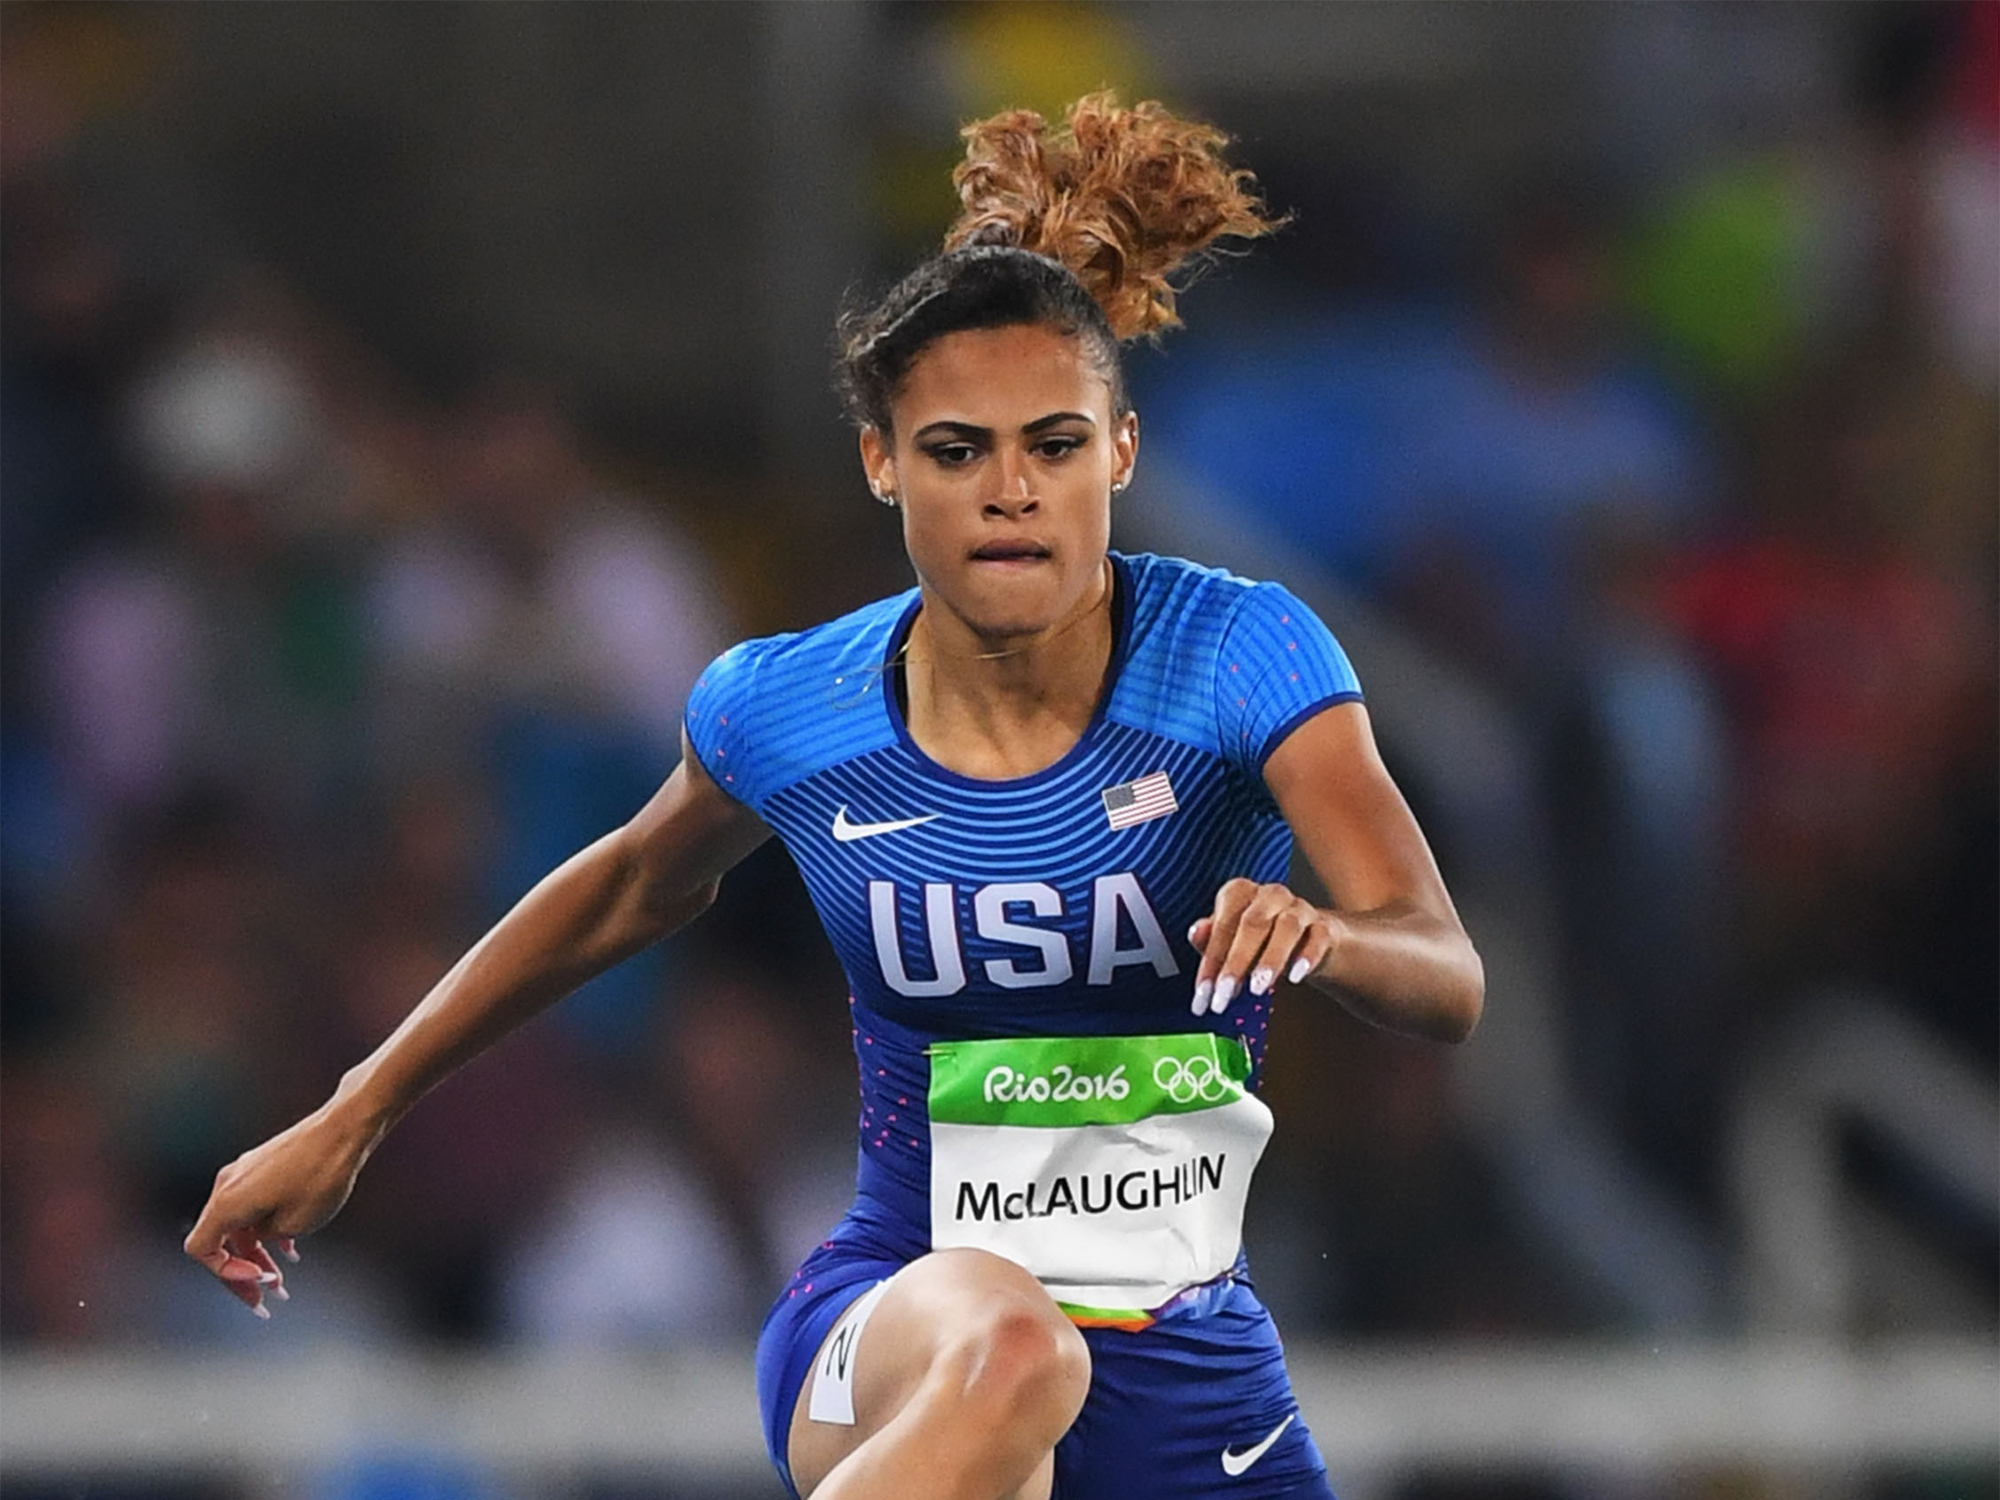 Sydney McLaughlin Earns Sports Illustrated Cover After Remarkable Career Capper